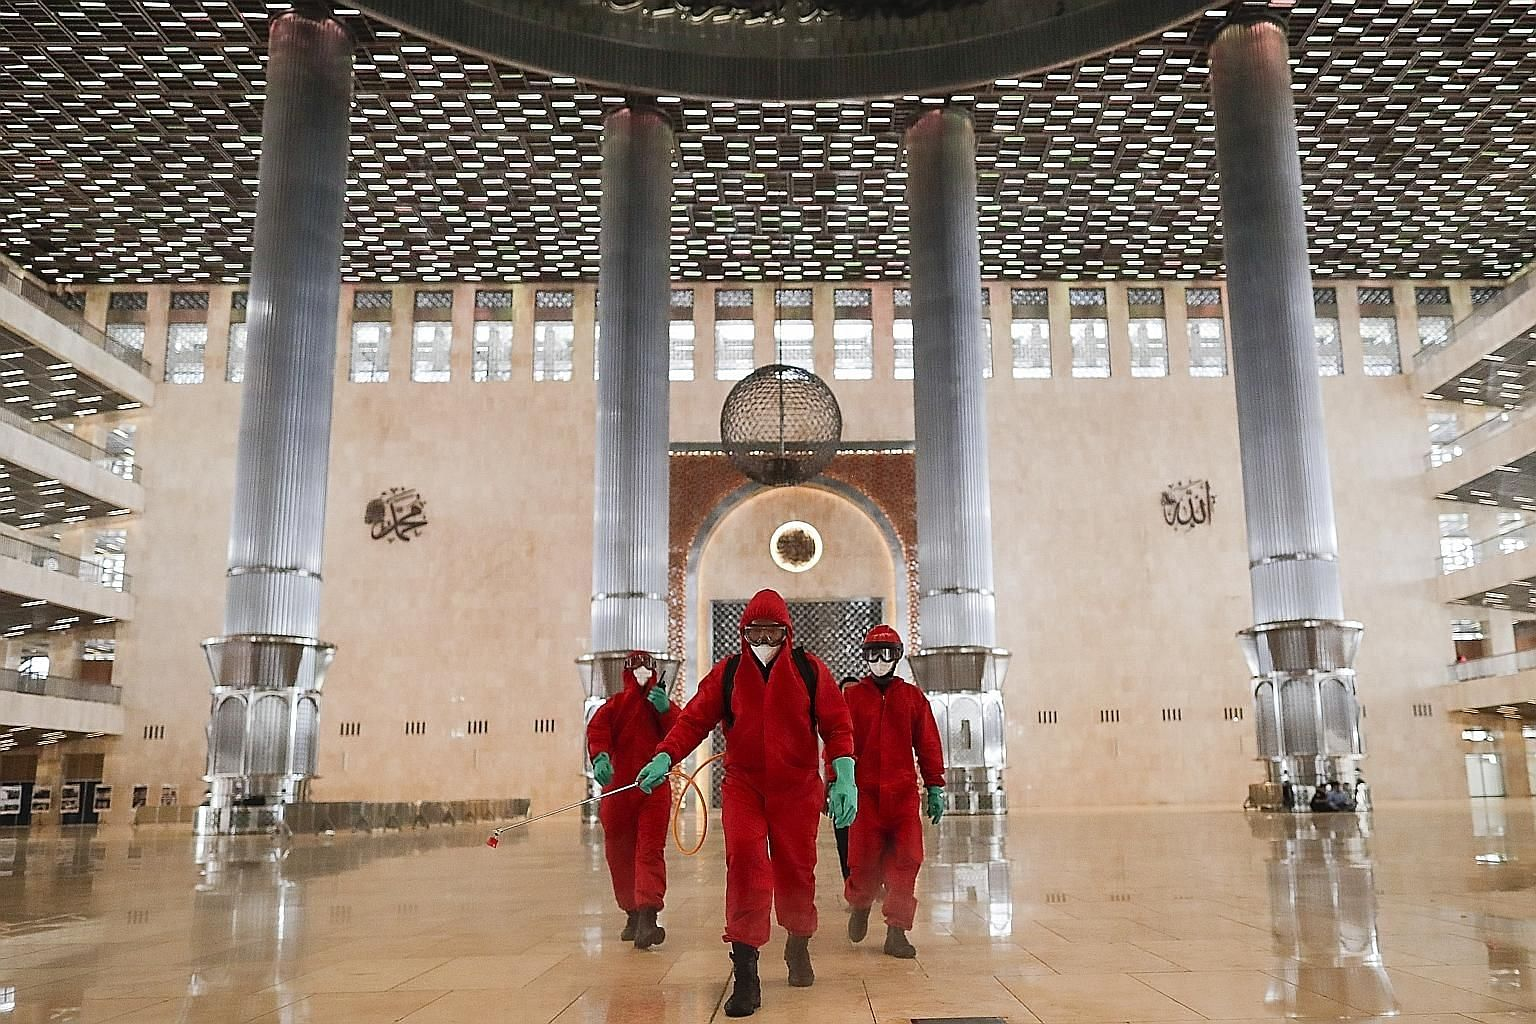 Disinfectant being sprayed at Istiqlal Mosque in Jakarta on Wednesday. Places of worship in the Indonesian capital can open their doors from today, as part of a transition phase over the next few weeks. The city administration can reinstate restricti